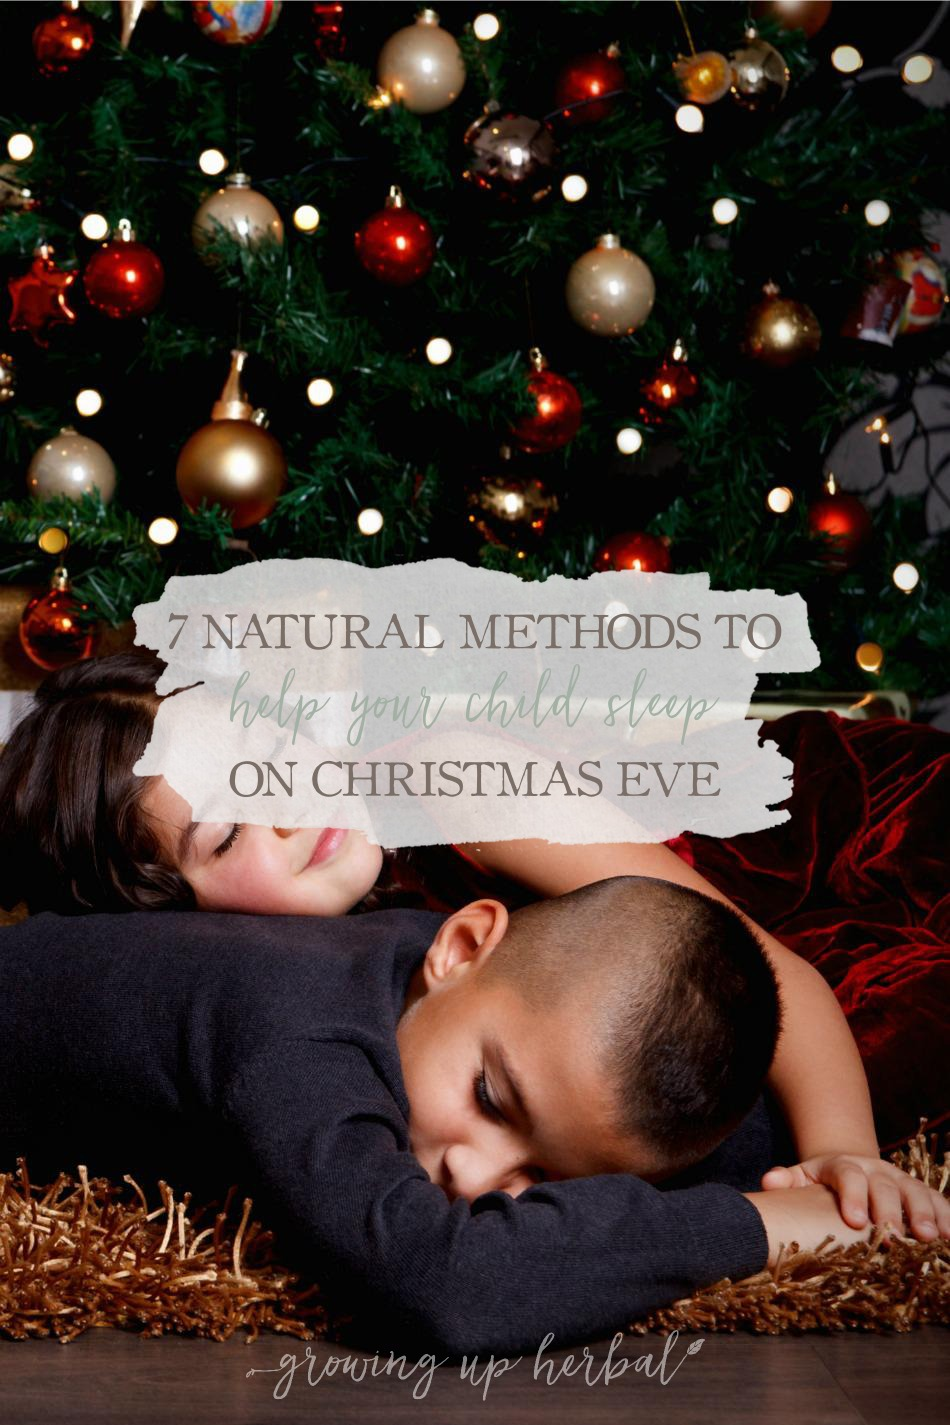 7 Natural Methods To Help Your Child Sleep On Christmas Eve | Growing Up Herbal | Are visions of sugarplums just too much for your little ones? Here are 7 ways you can help your child sleep on Christmas Eve naturally!